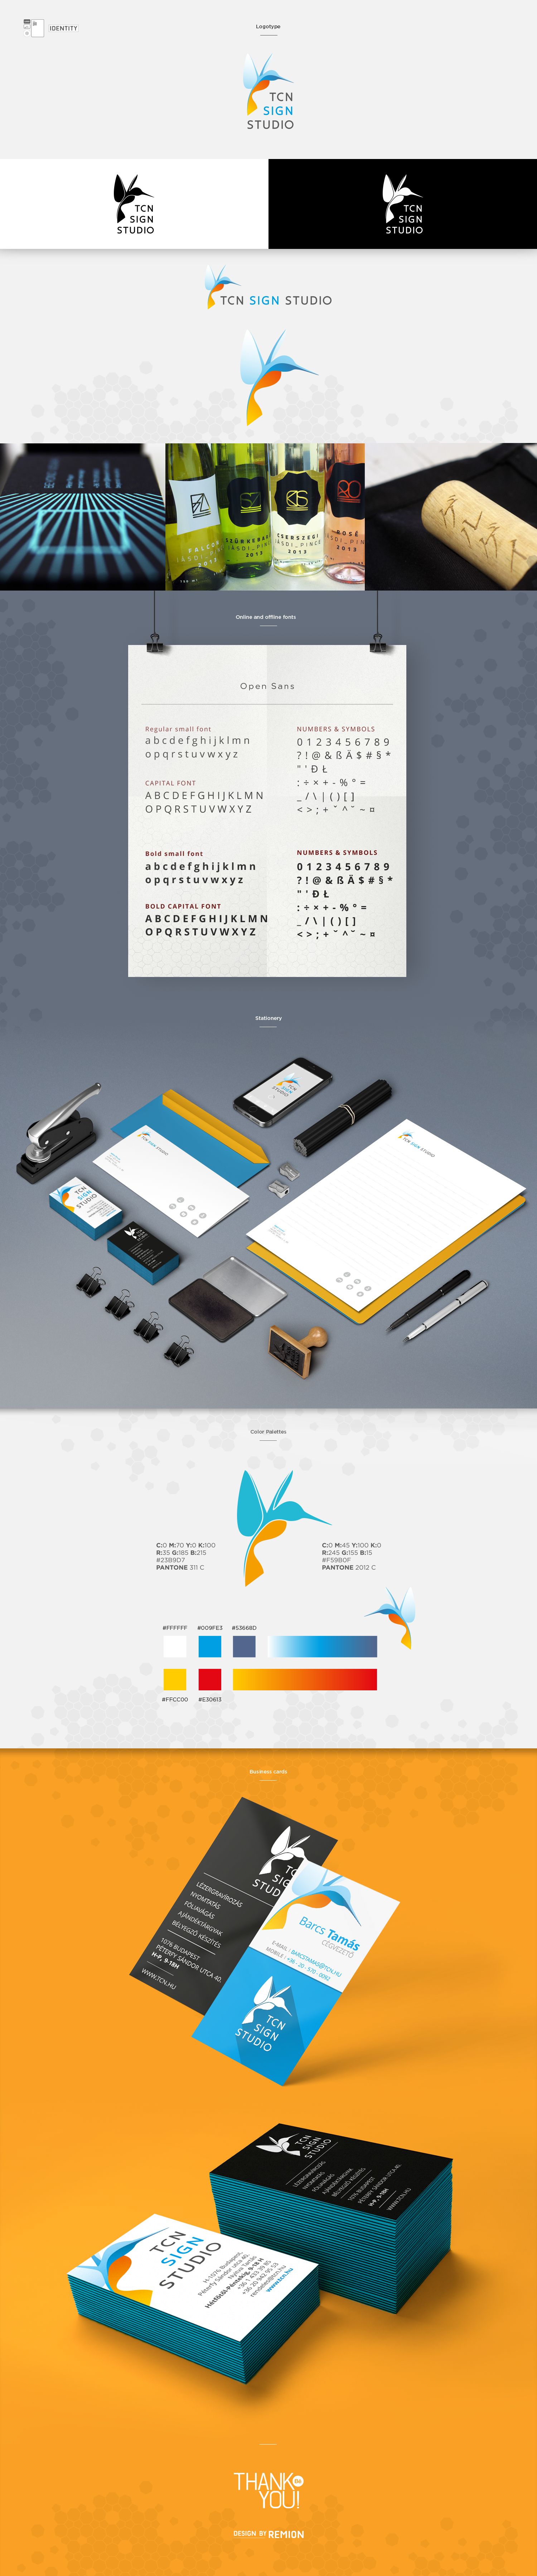 TCN Sign Studio / Corporate Identity - 1 by REMION Design Studio